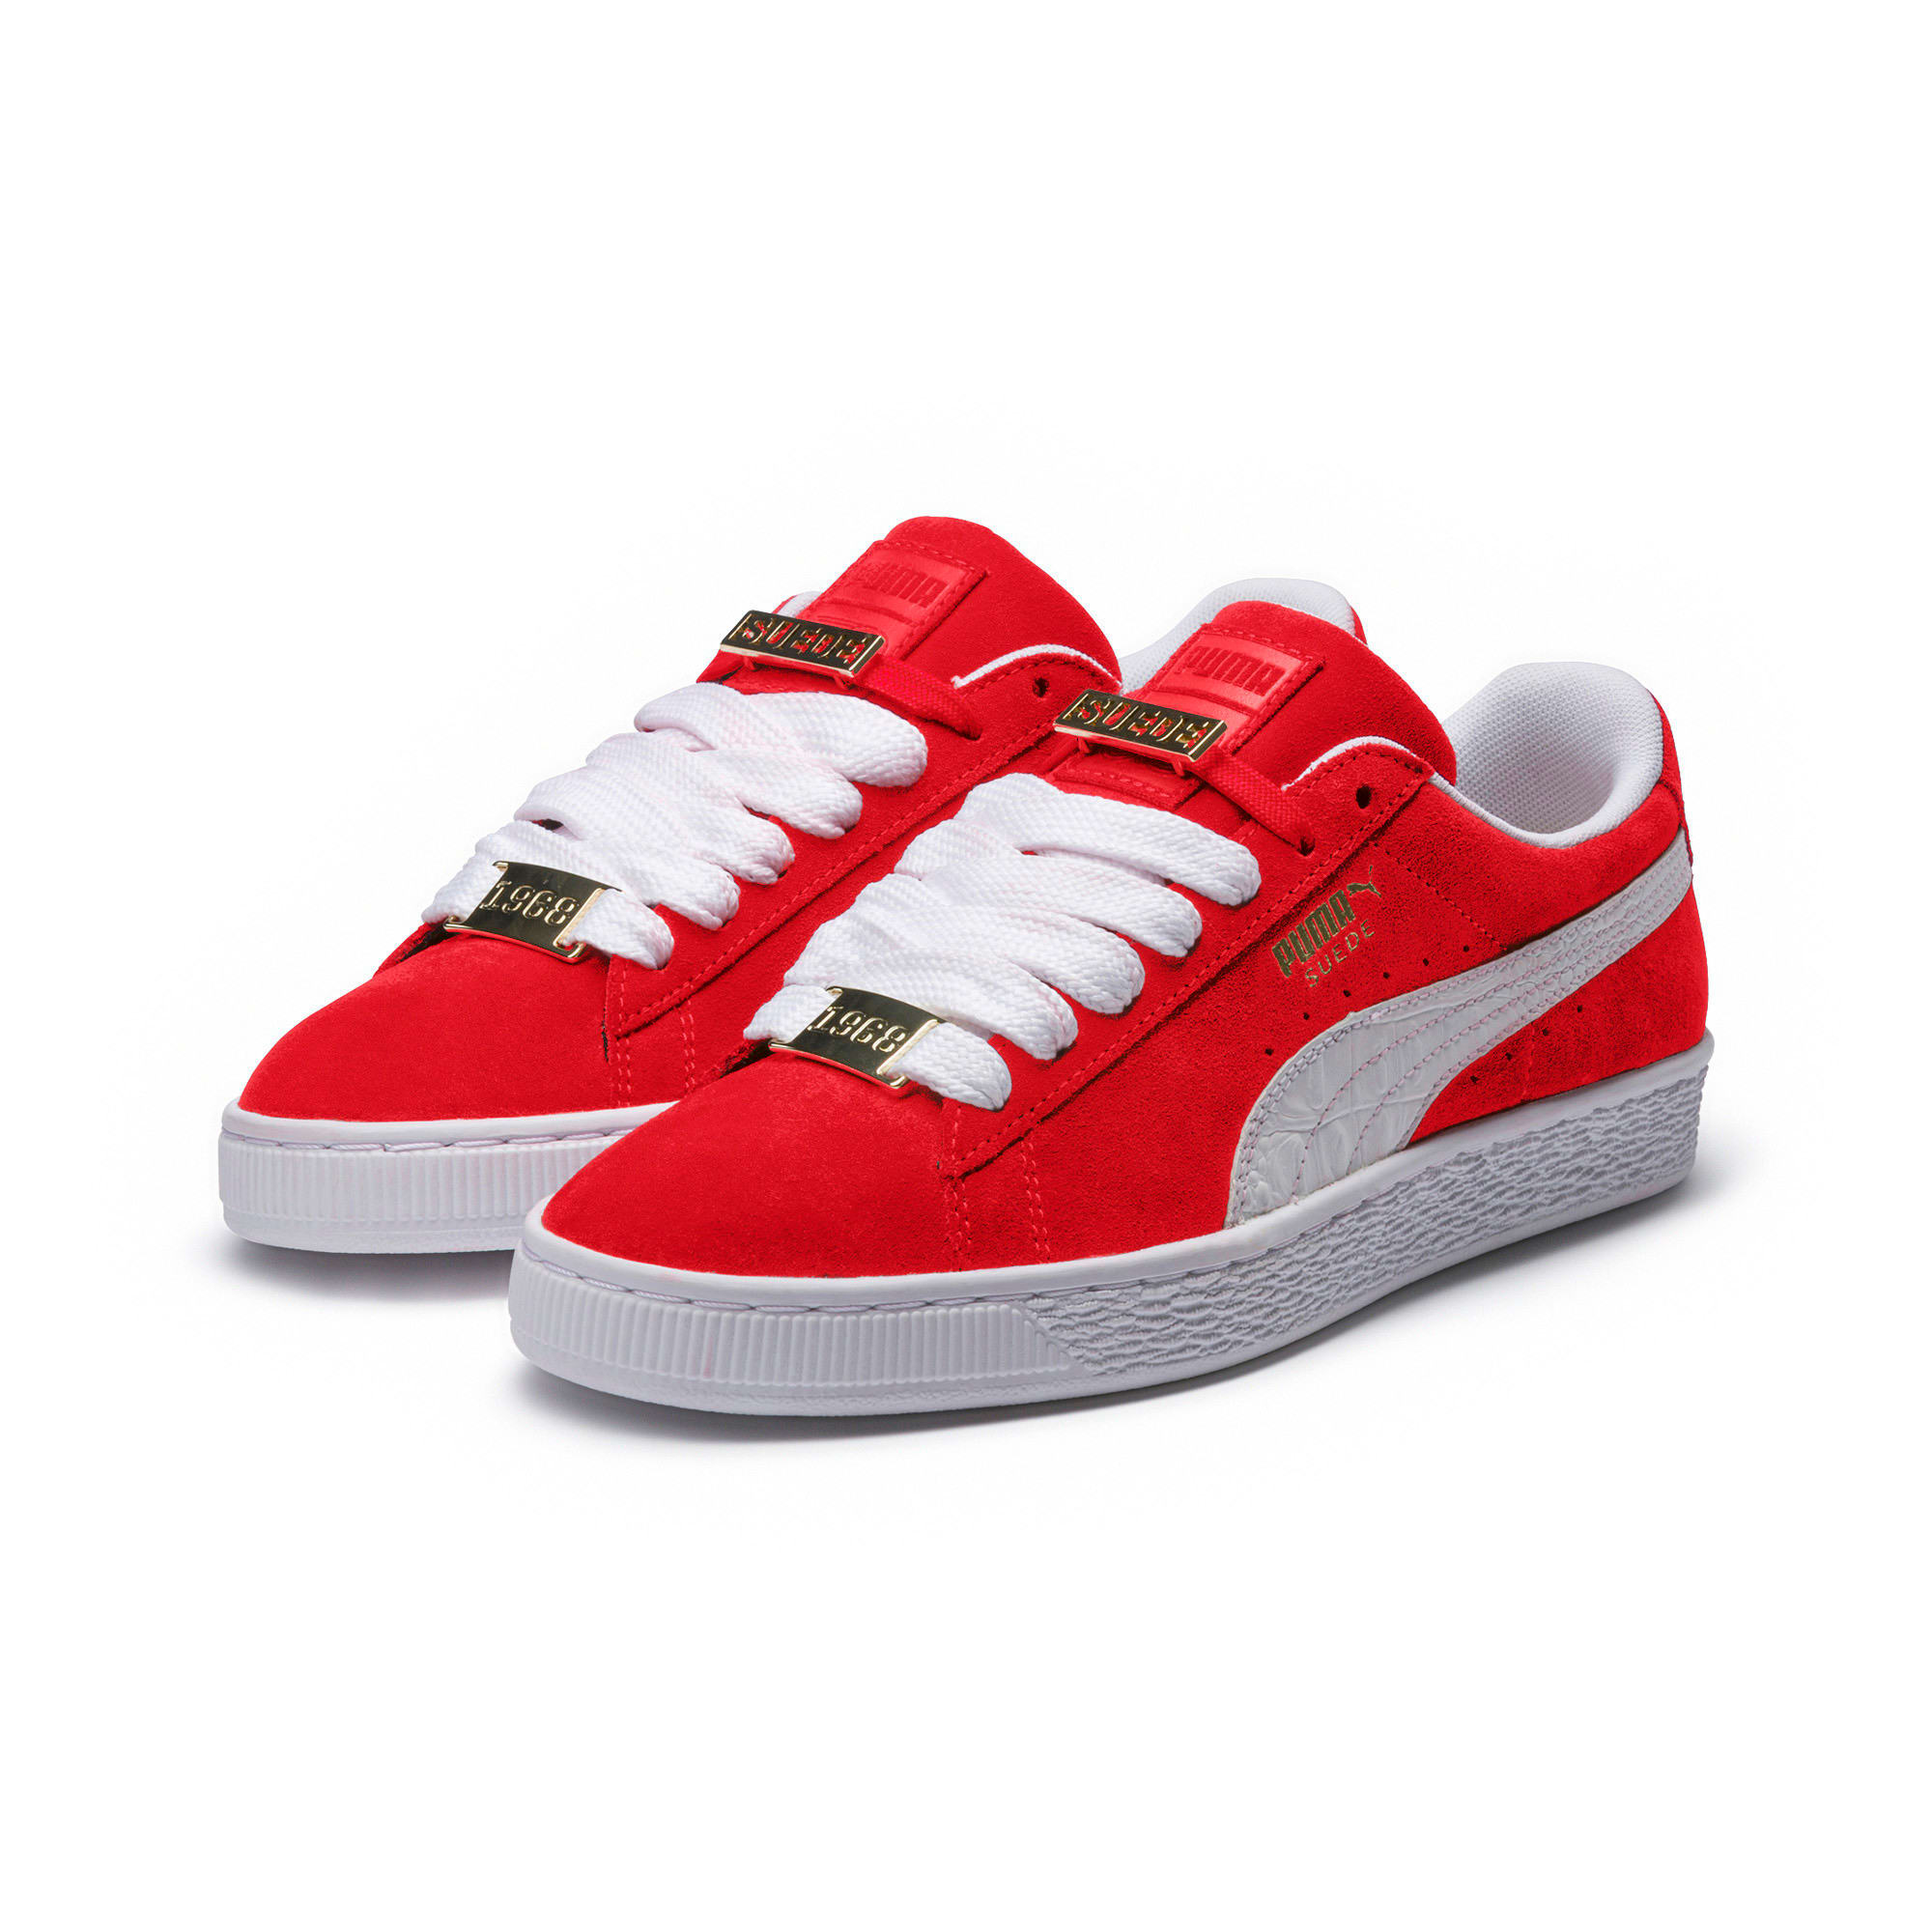 Thumbnail 2 of Suede Classic B-BOY Fabulous Trainers, Flame Scarlet-Puma White, medium-IND